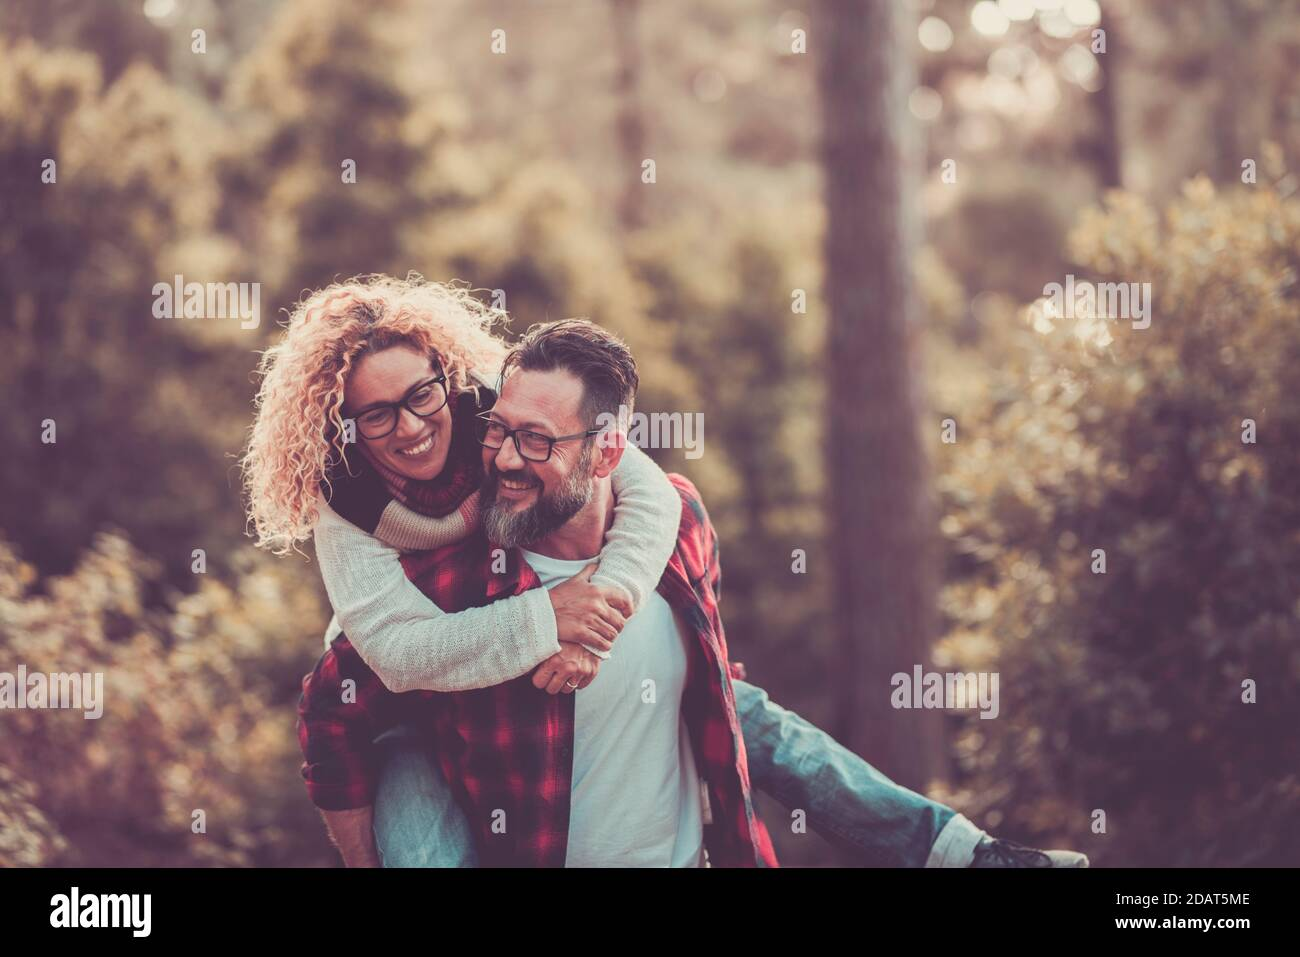 Happy adult couple enjoy nature wood forest together and outdoor leisure activity with fun and joyful - man carry woman on his back and both laugh a l Stock Photo